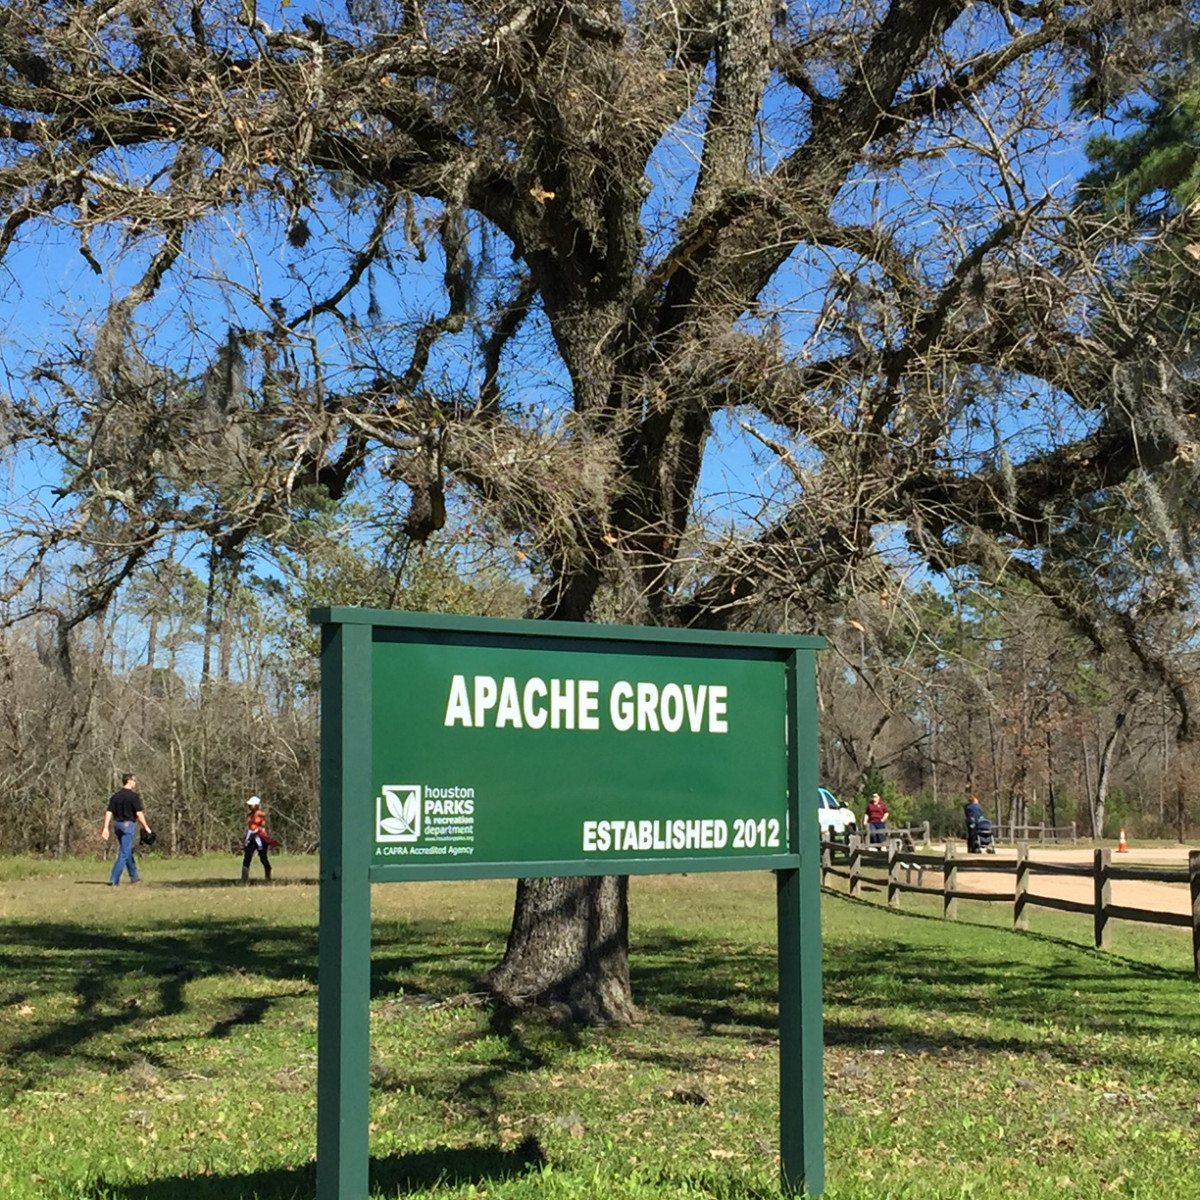 Apache tree planting, Memorial Park, Jan. 2016, Apache Grove